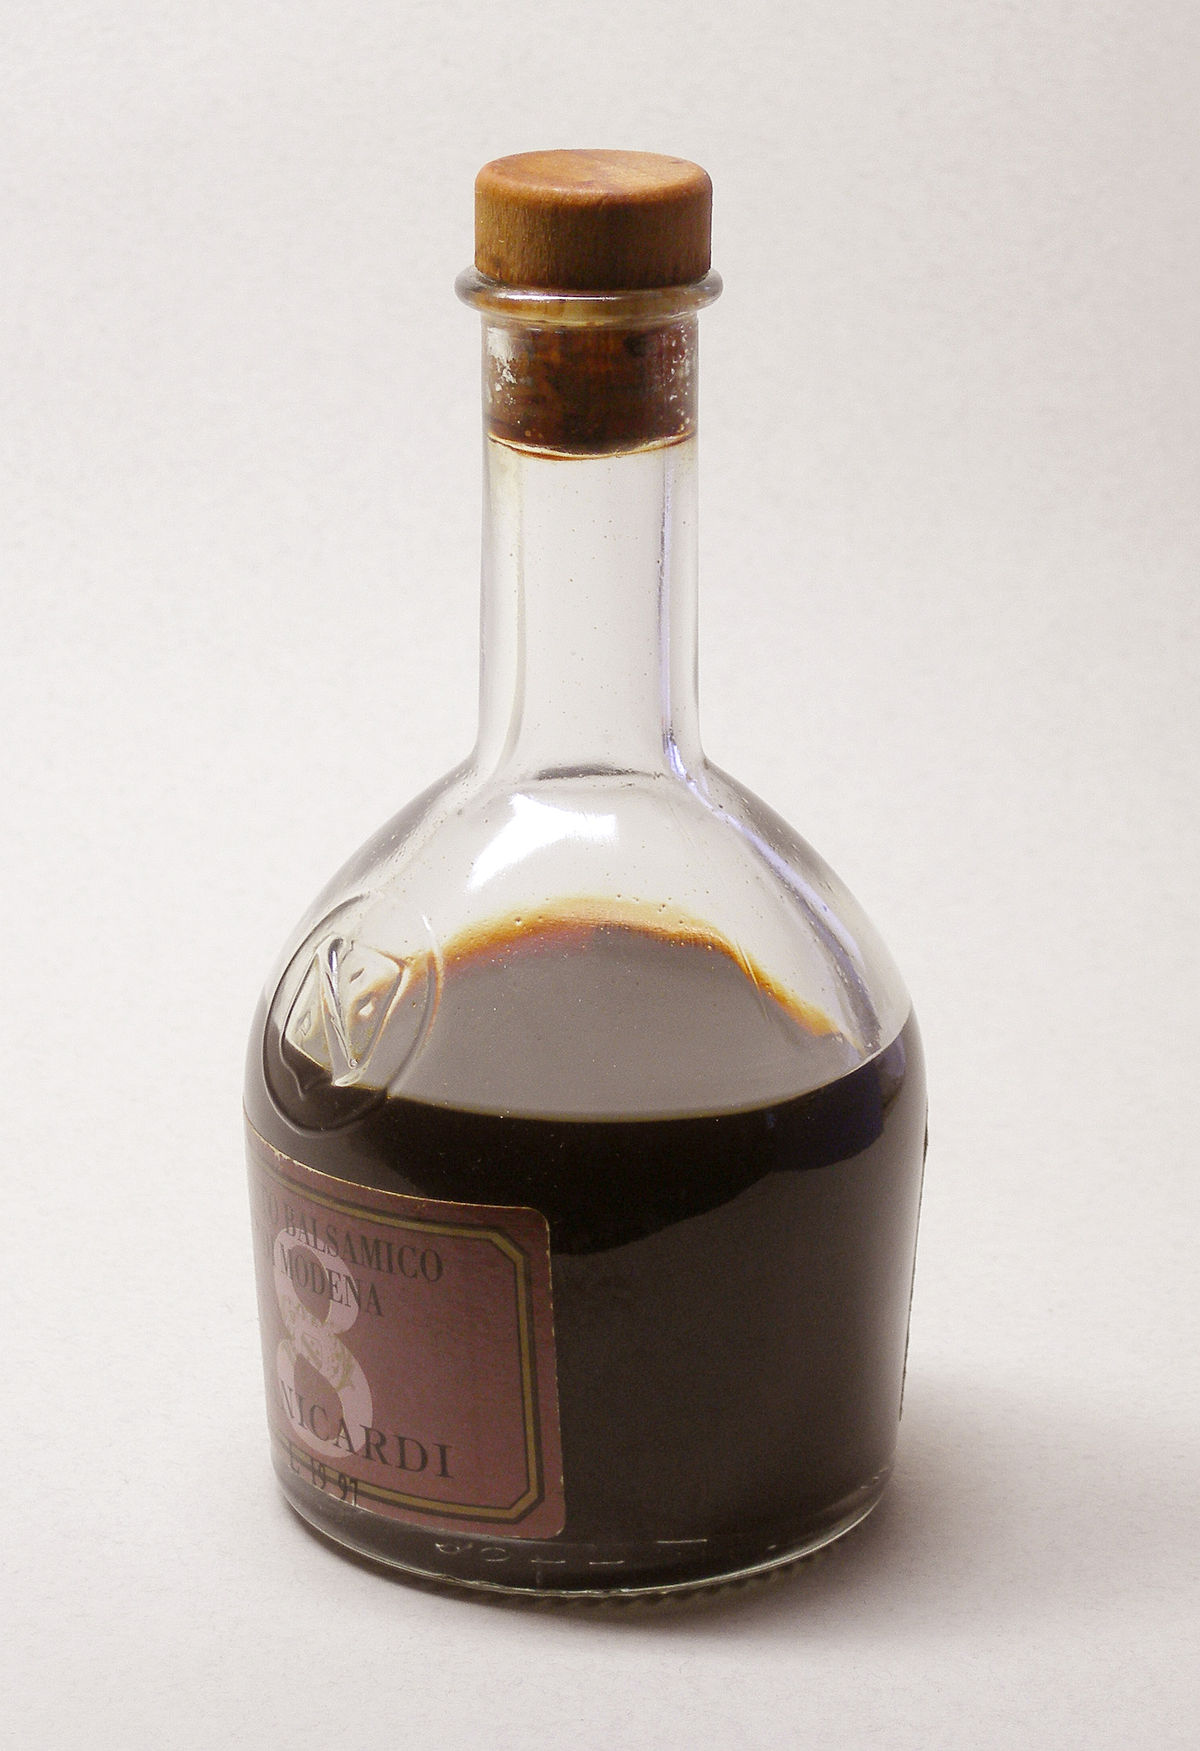 Balsamic vinegar - Wikipedia